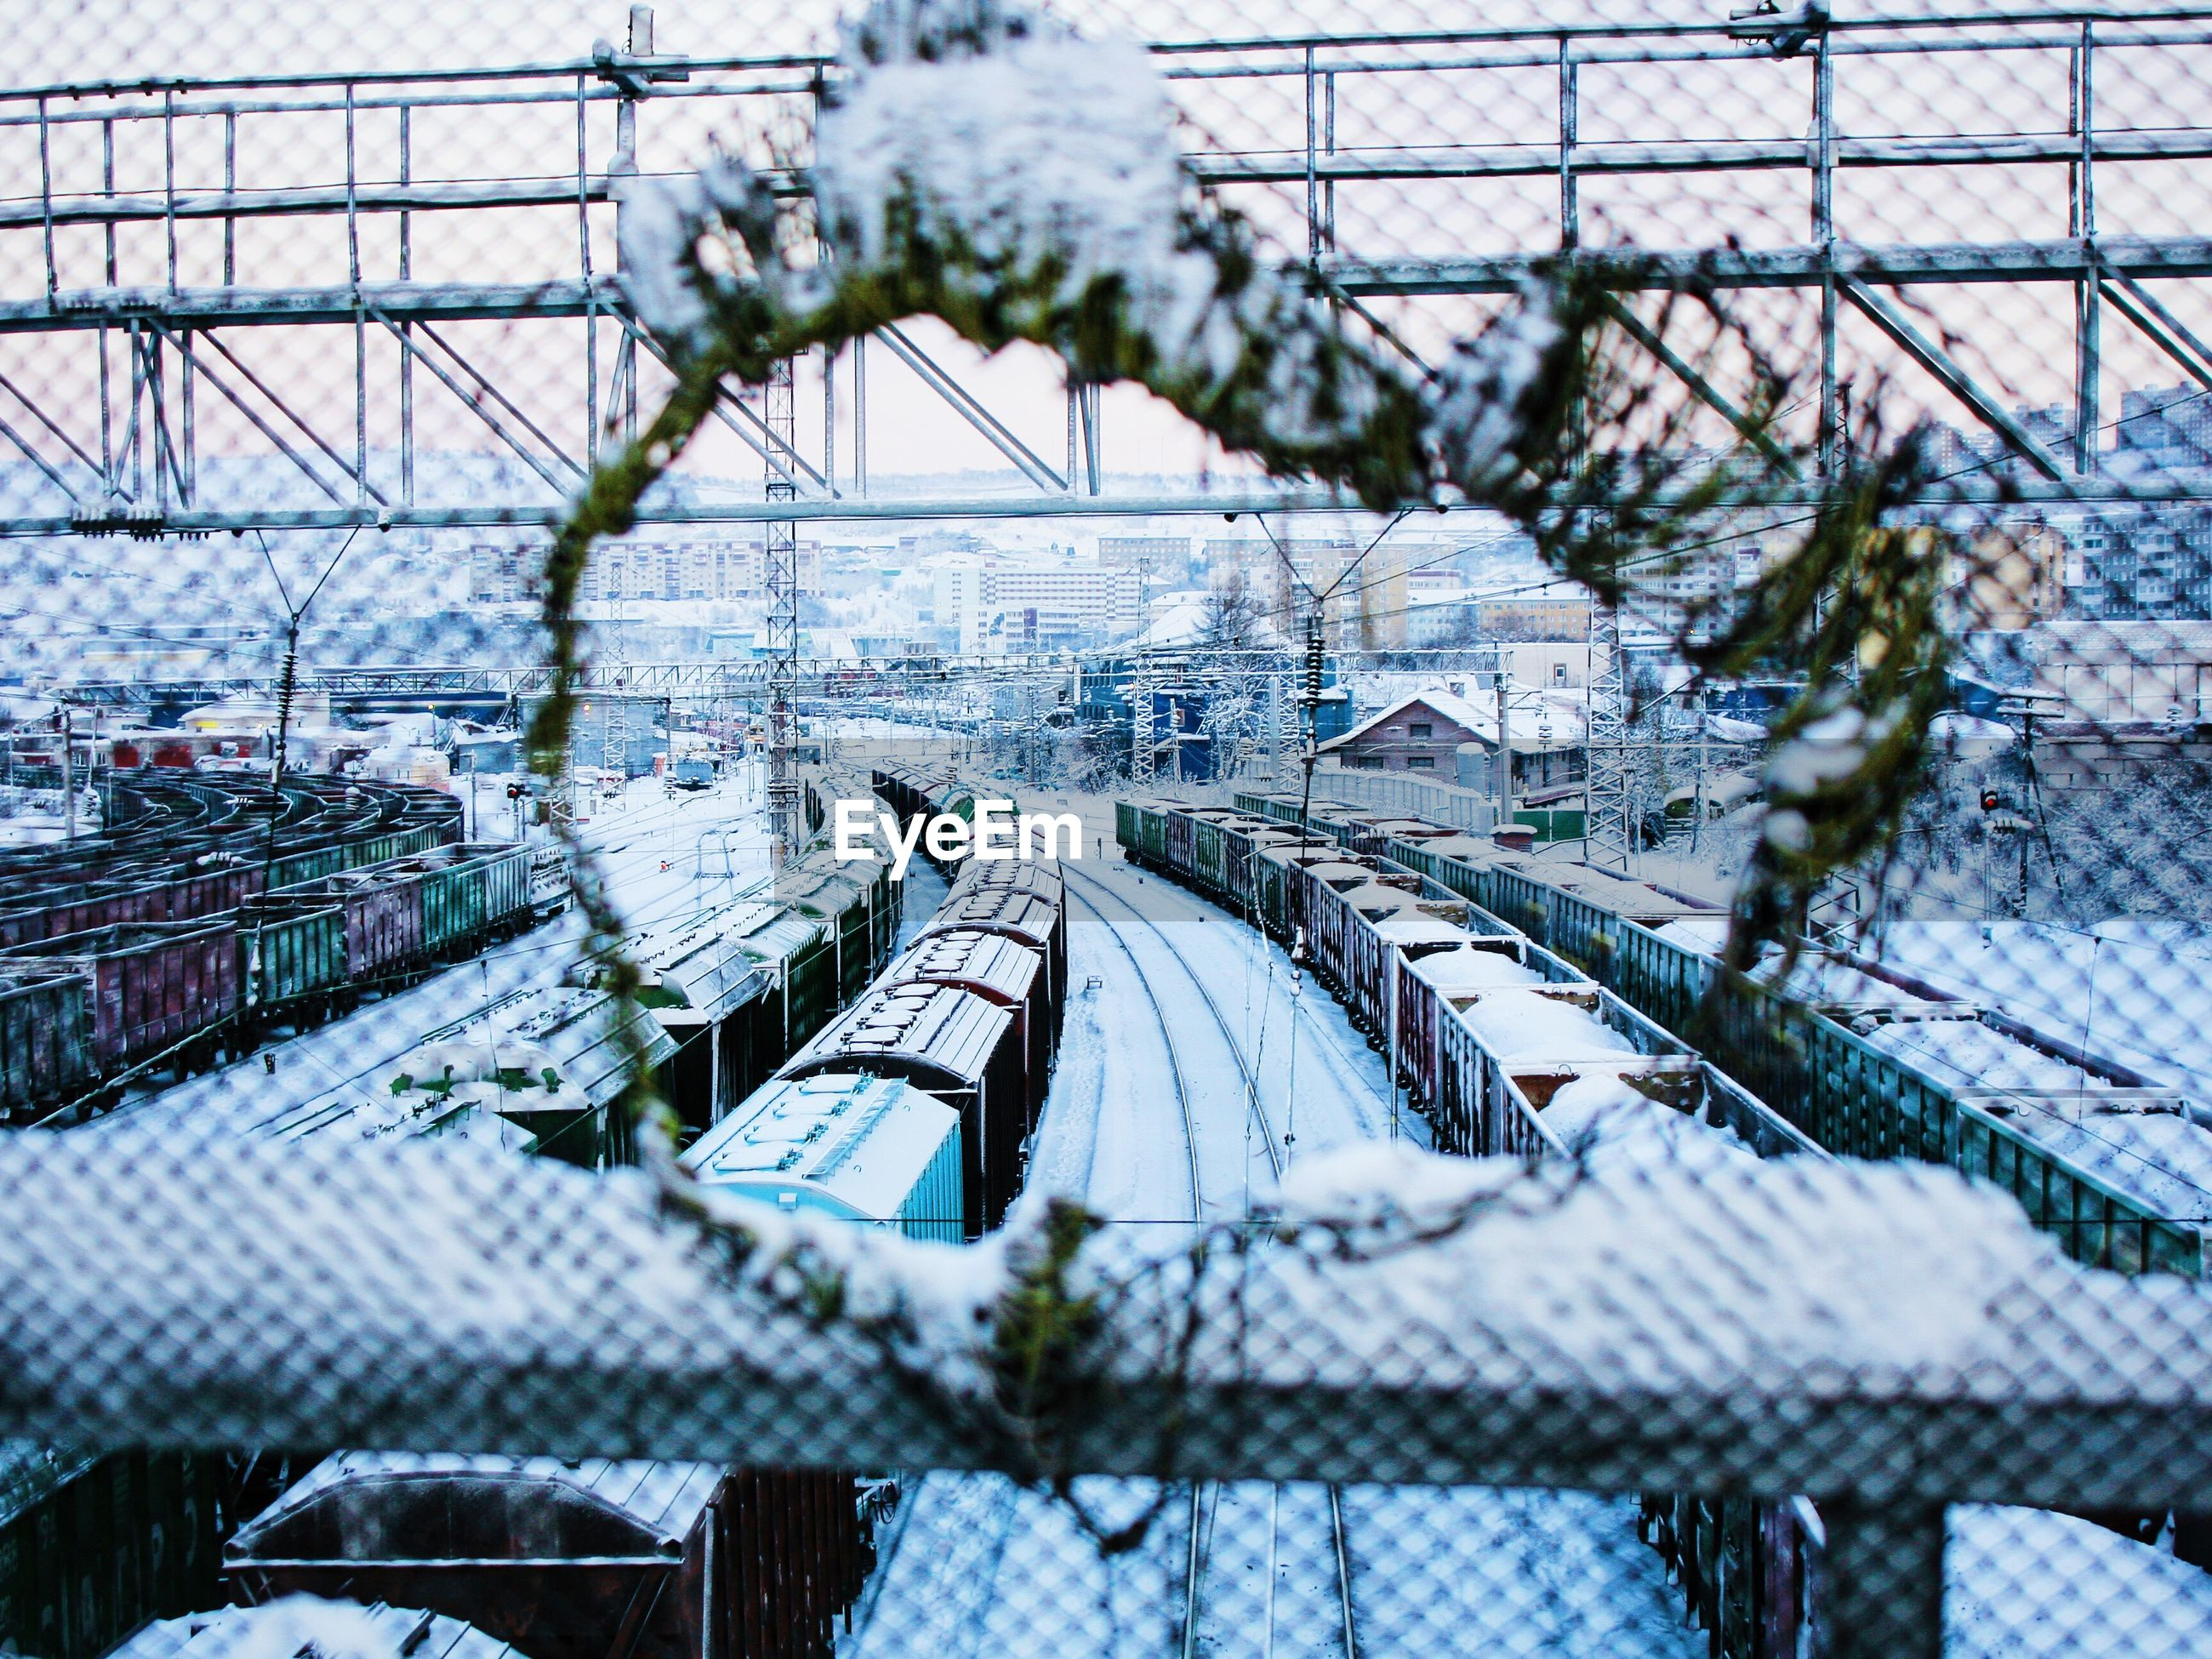 Trains on snow covered field seen through hole in fence